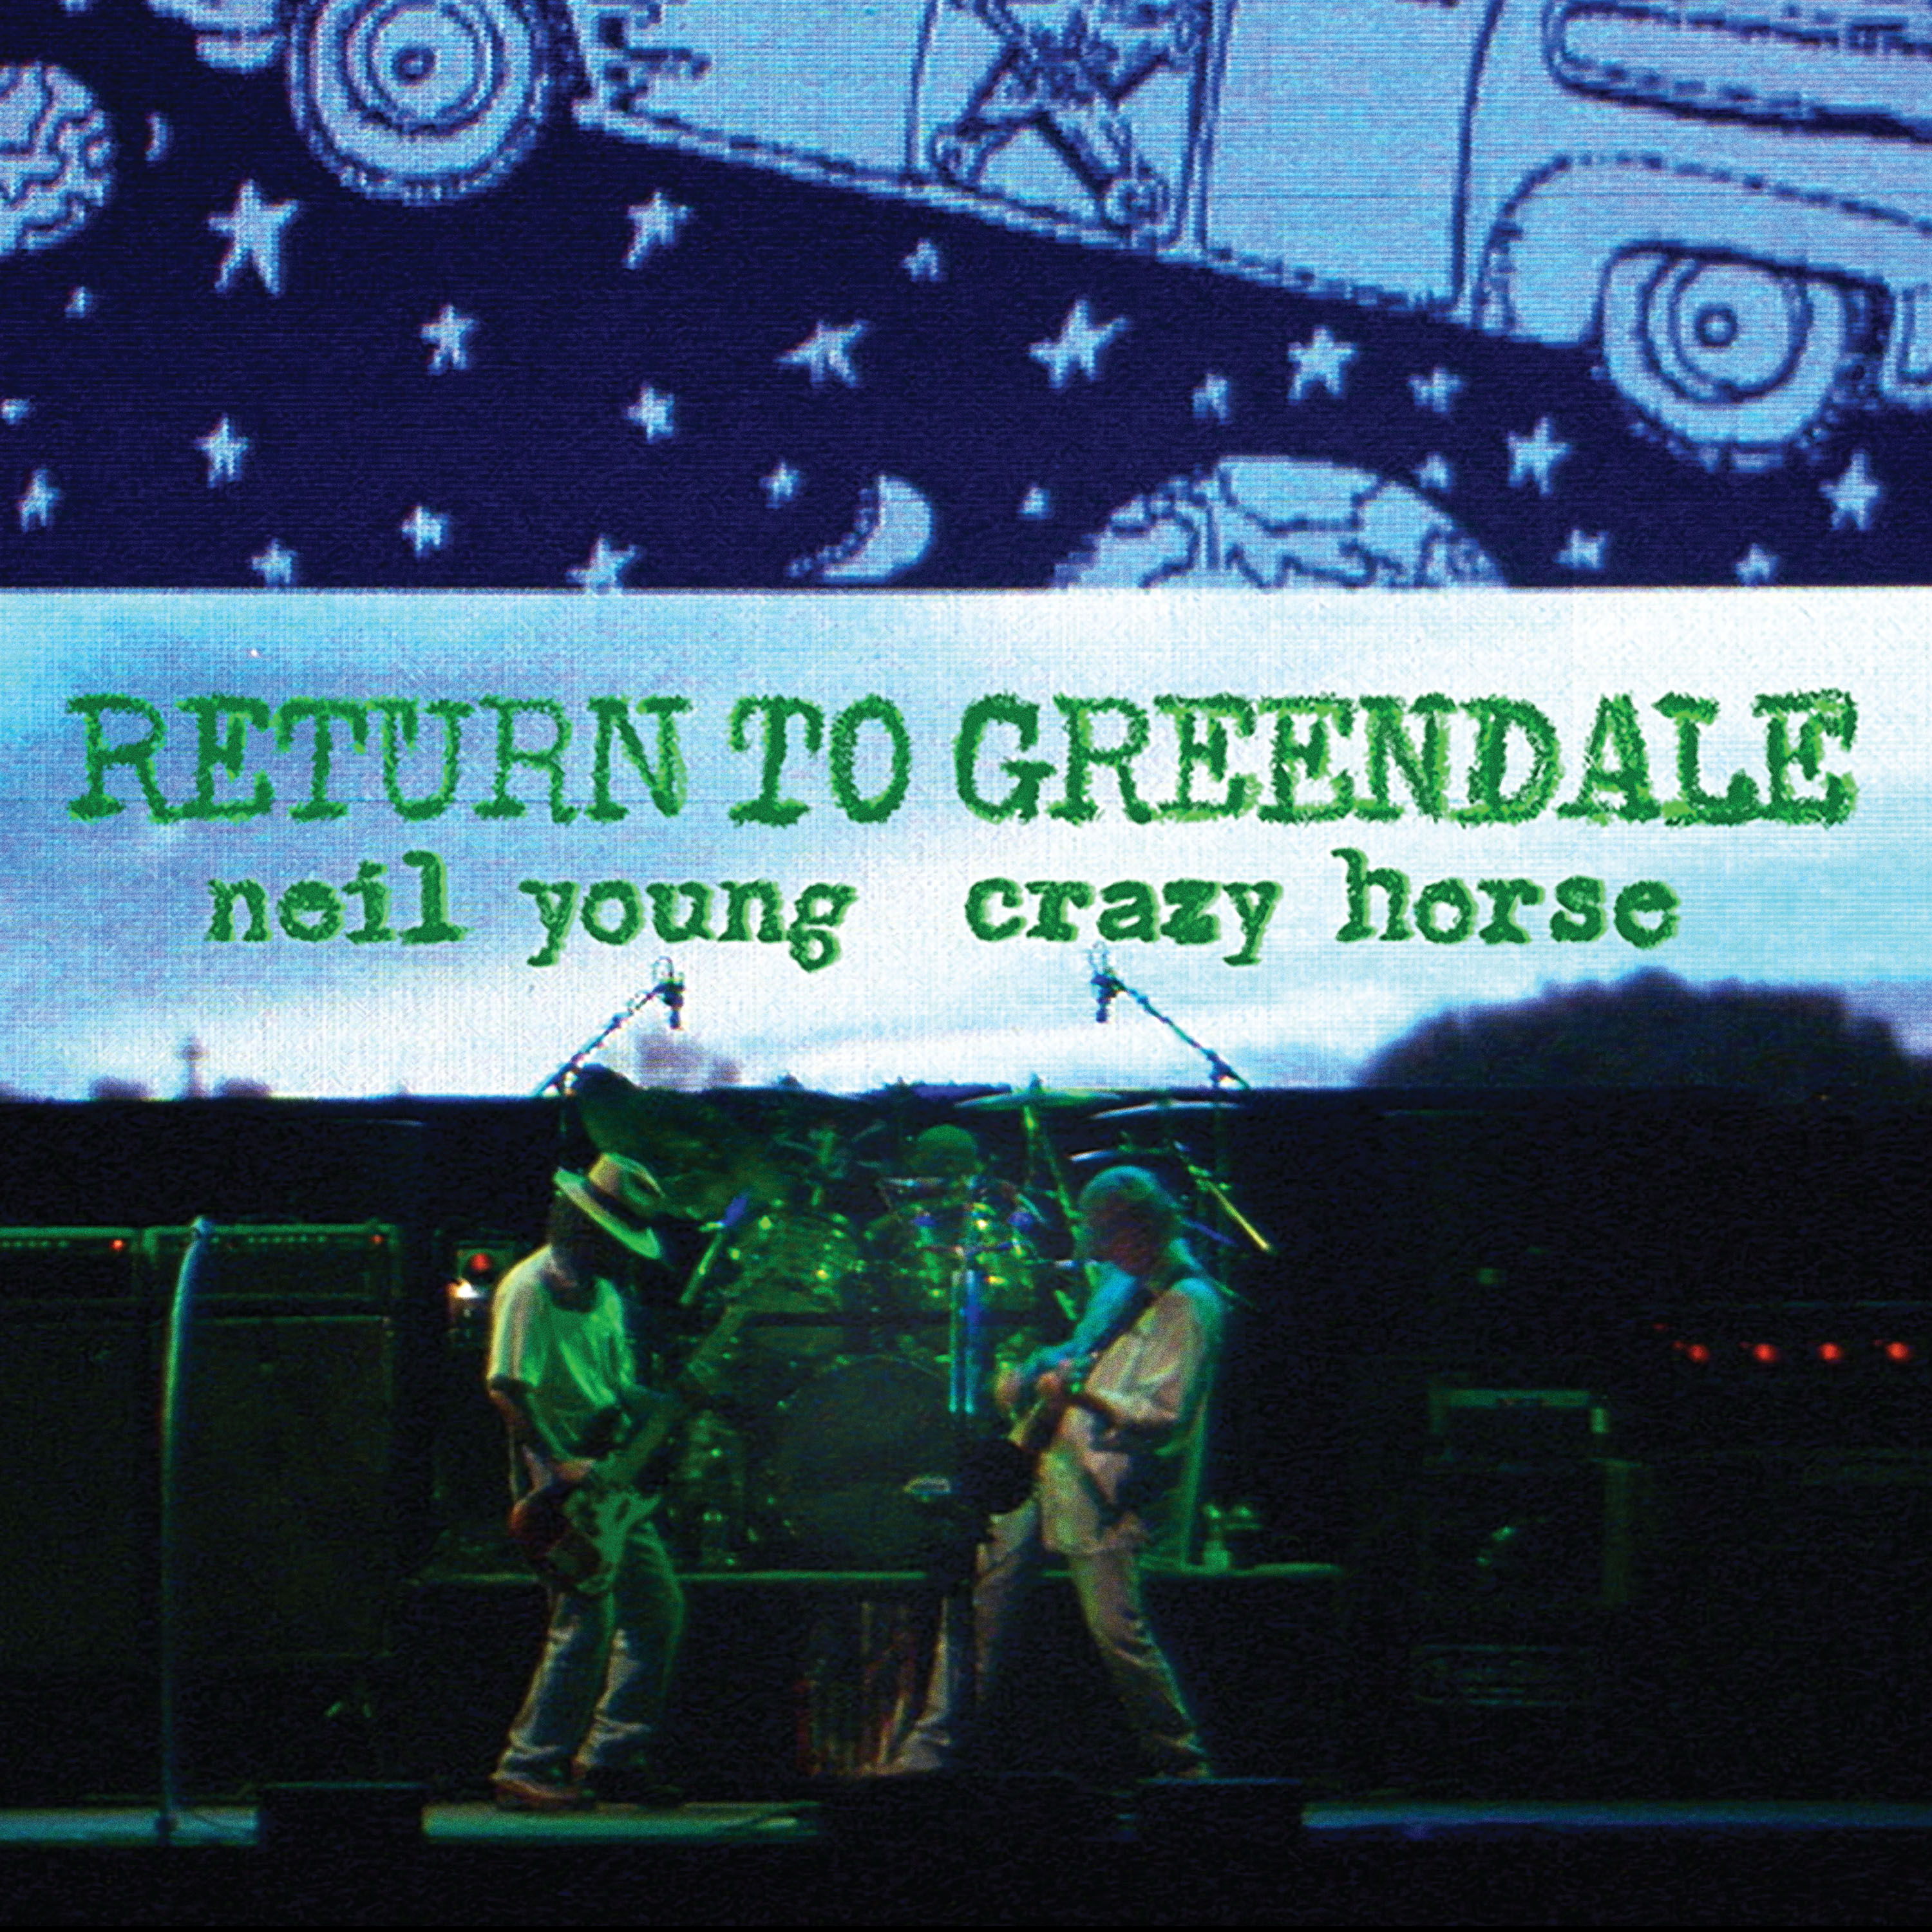 Neil Young & Crazy Horse - CD RETURN TO GREENDALE